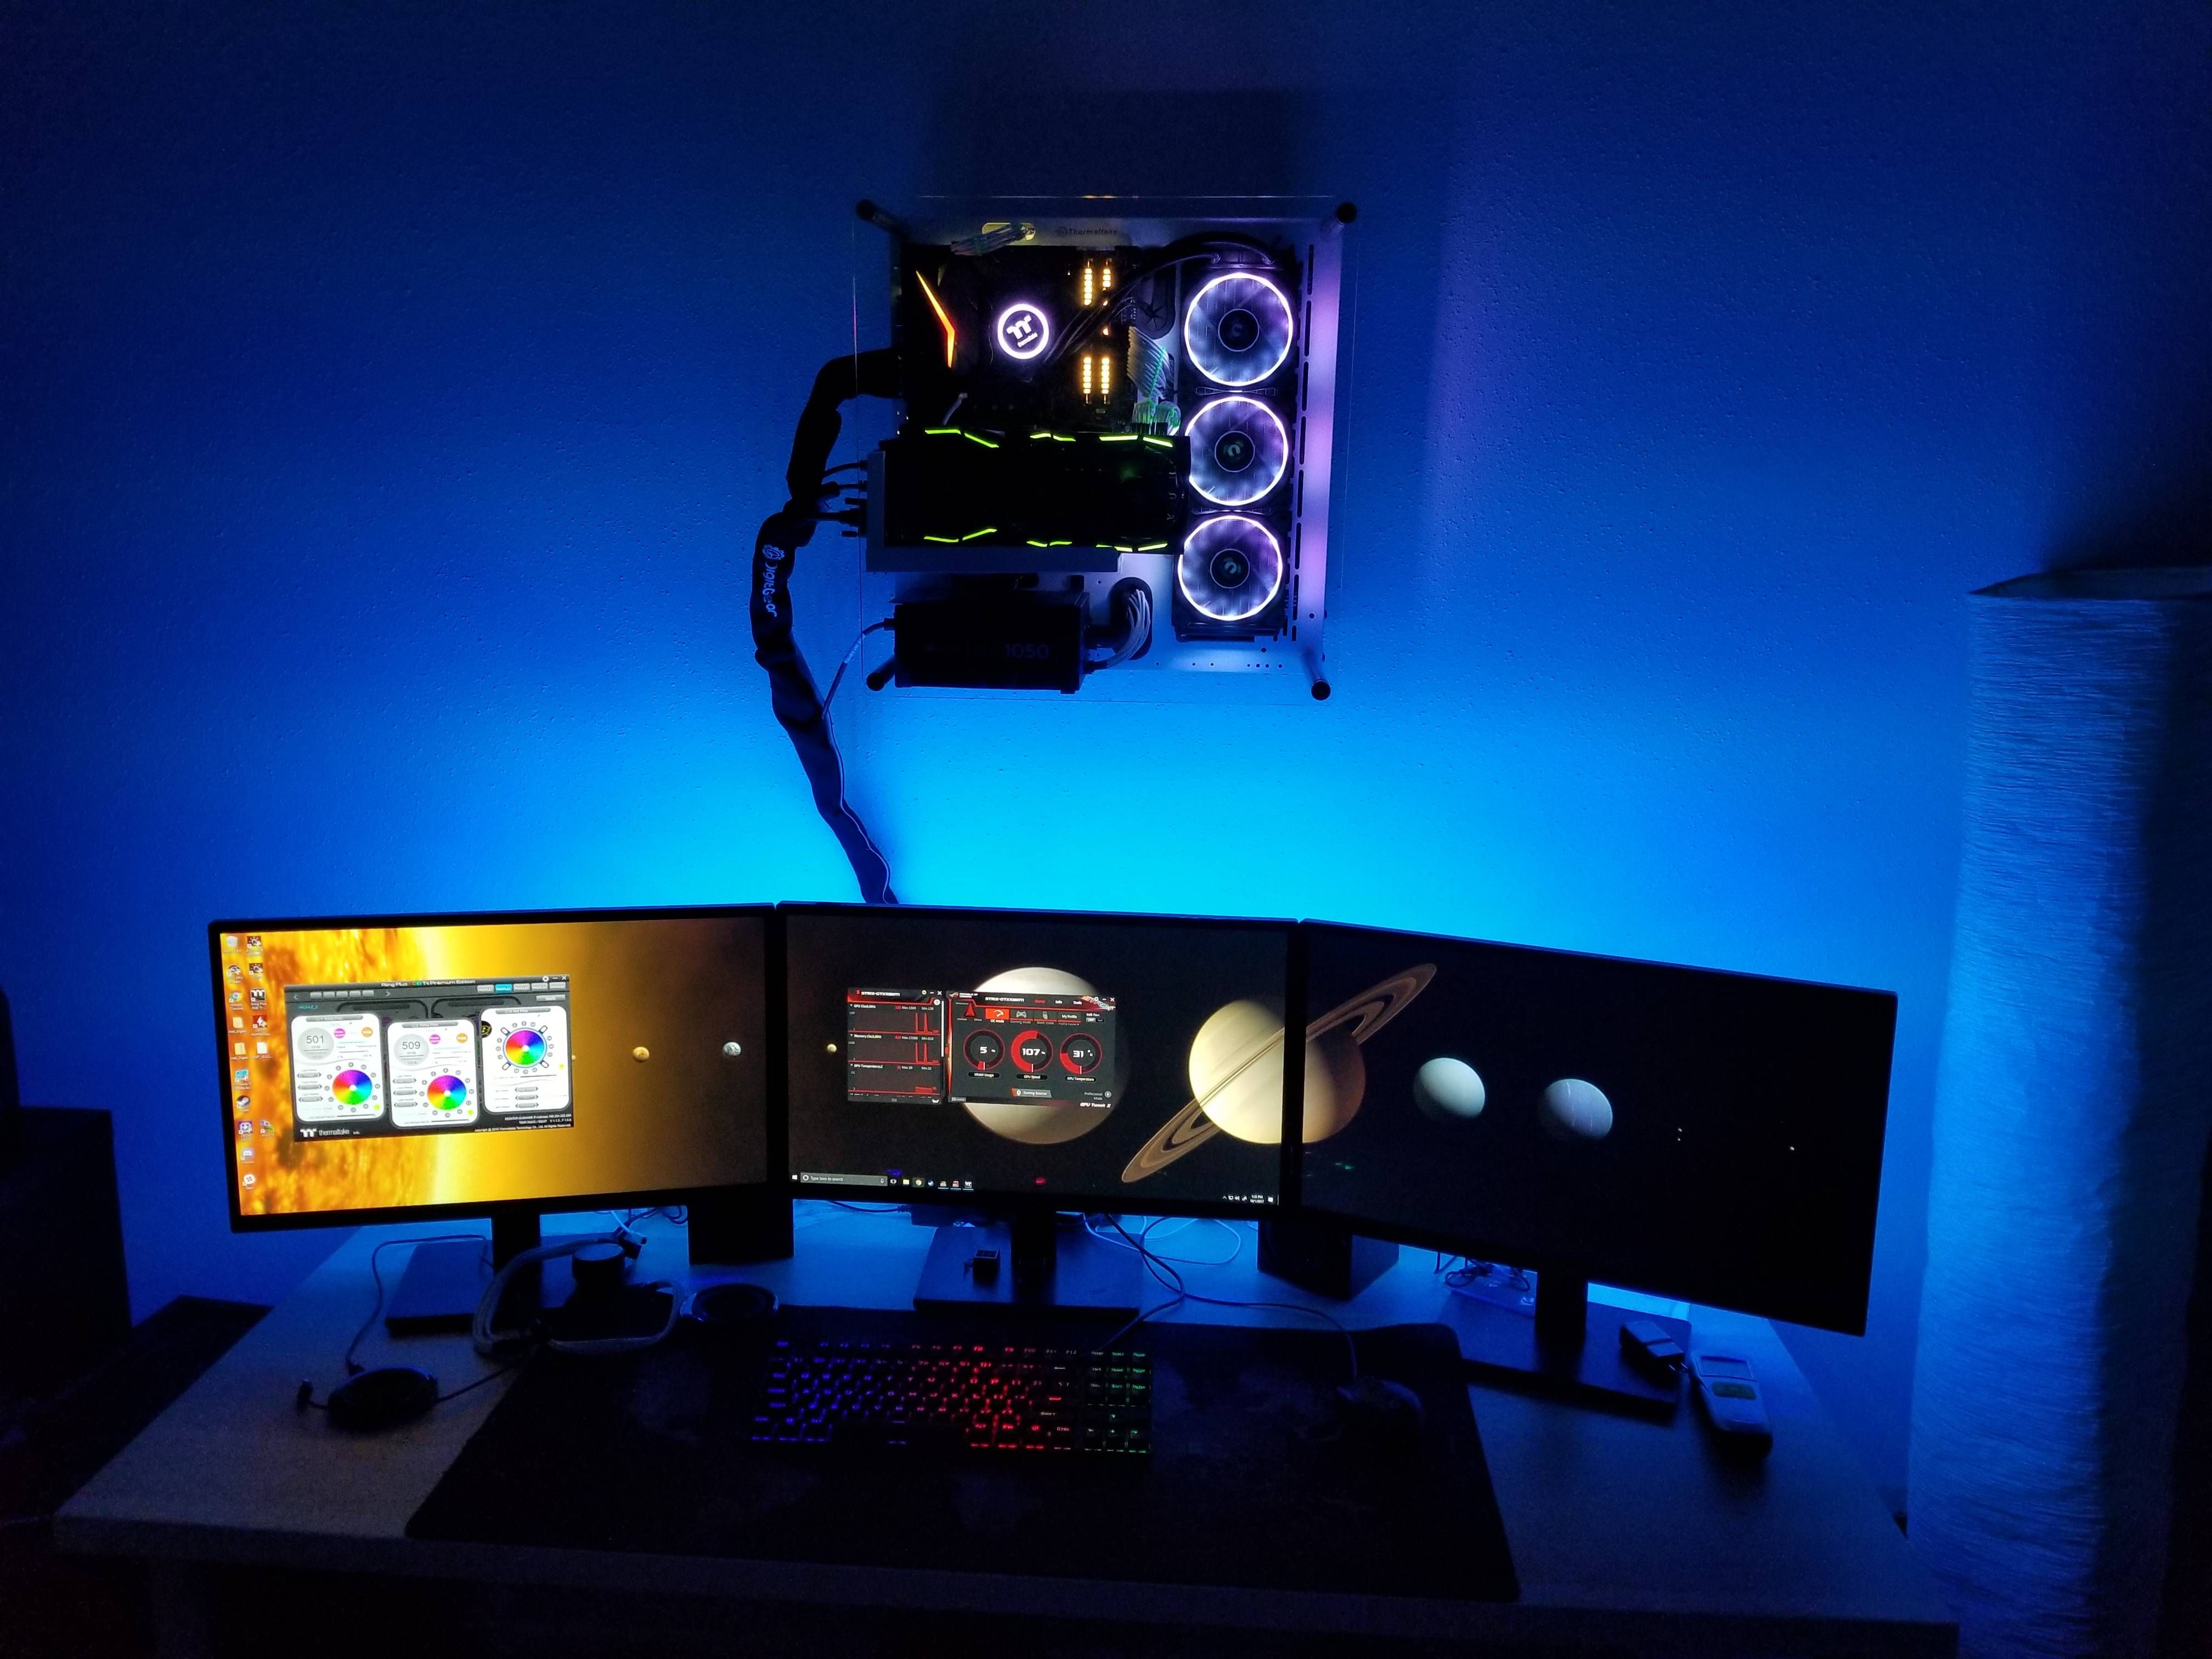 Finally Wall Mounted My Thermaltake P3 Build Video Game Rooms Video Game Room Design Video Game Room